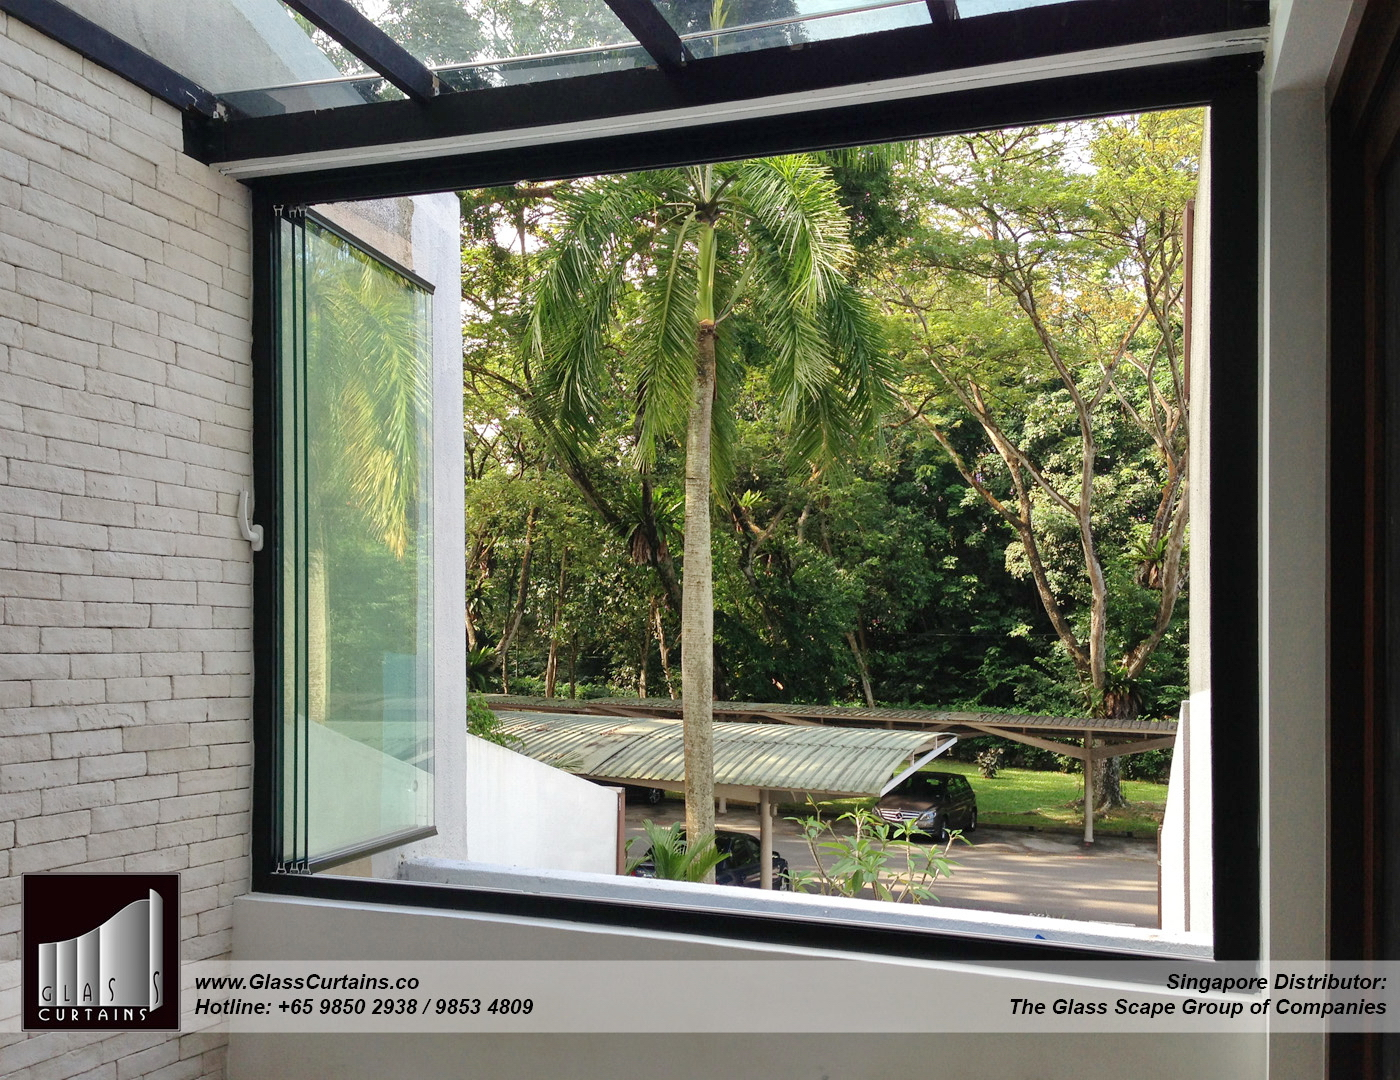 balcony frameless glass doors and doors opened 8 inside.jpg